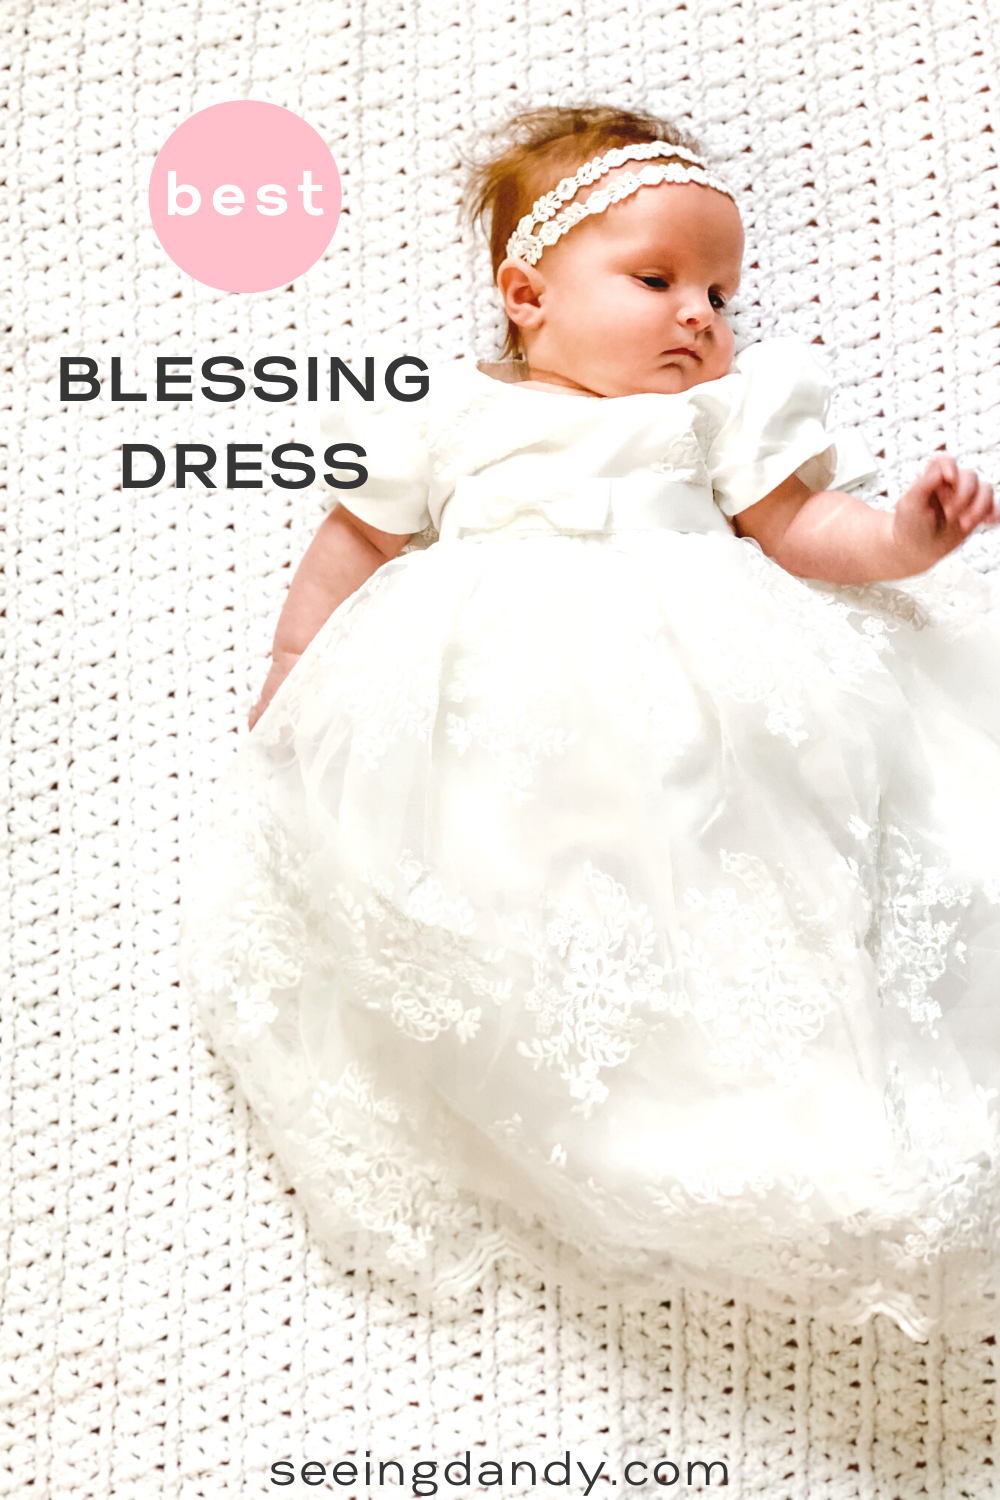 glamulice white lace baby dress, christening dresses, embroidery white baby dress, lds blessing dress, lds blessing gown, white crochet baby blanket